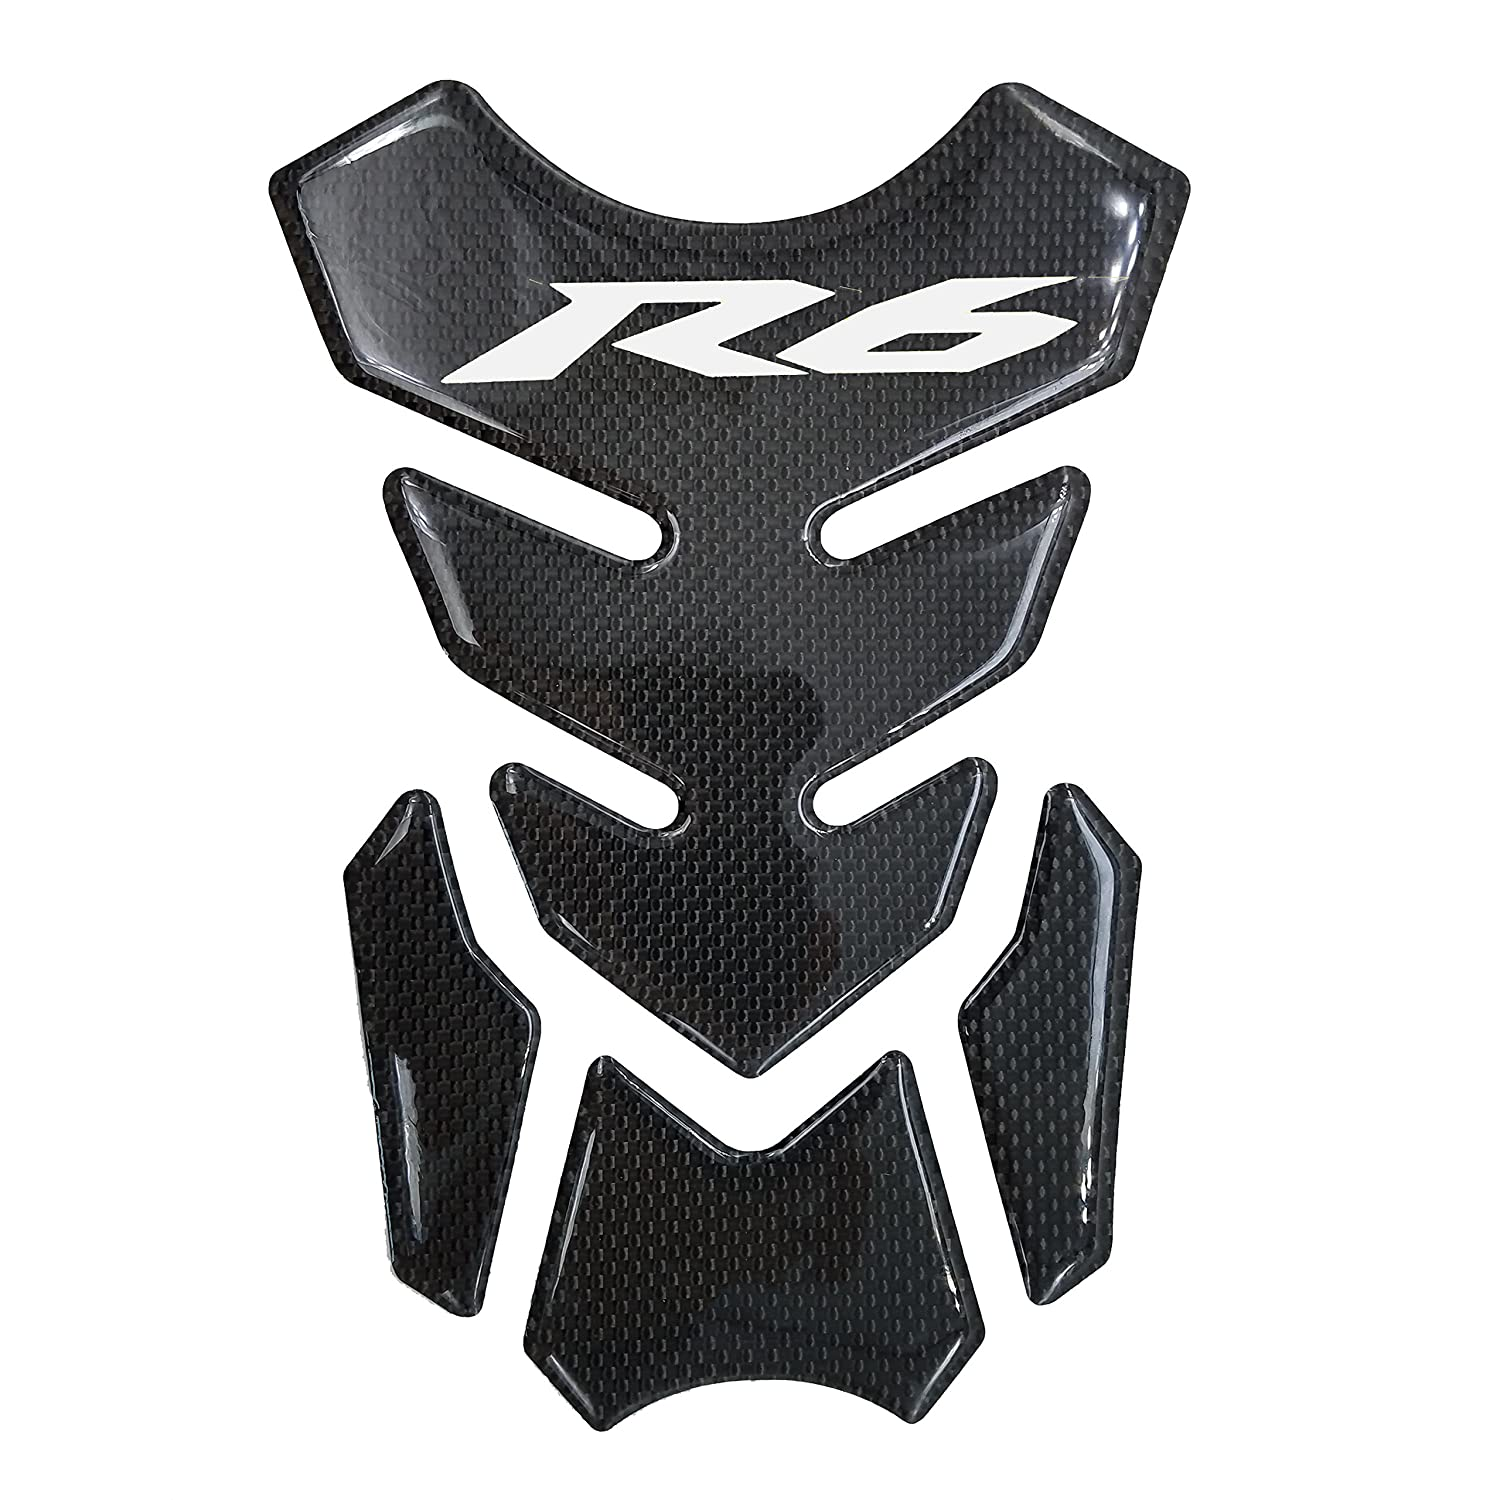 Silver Real Carbon Fiber 3D Sticker Vinyl Decal Emblem Protection Gas Tank Pad For Yamaha YZF R6 PM-14